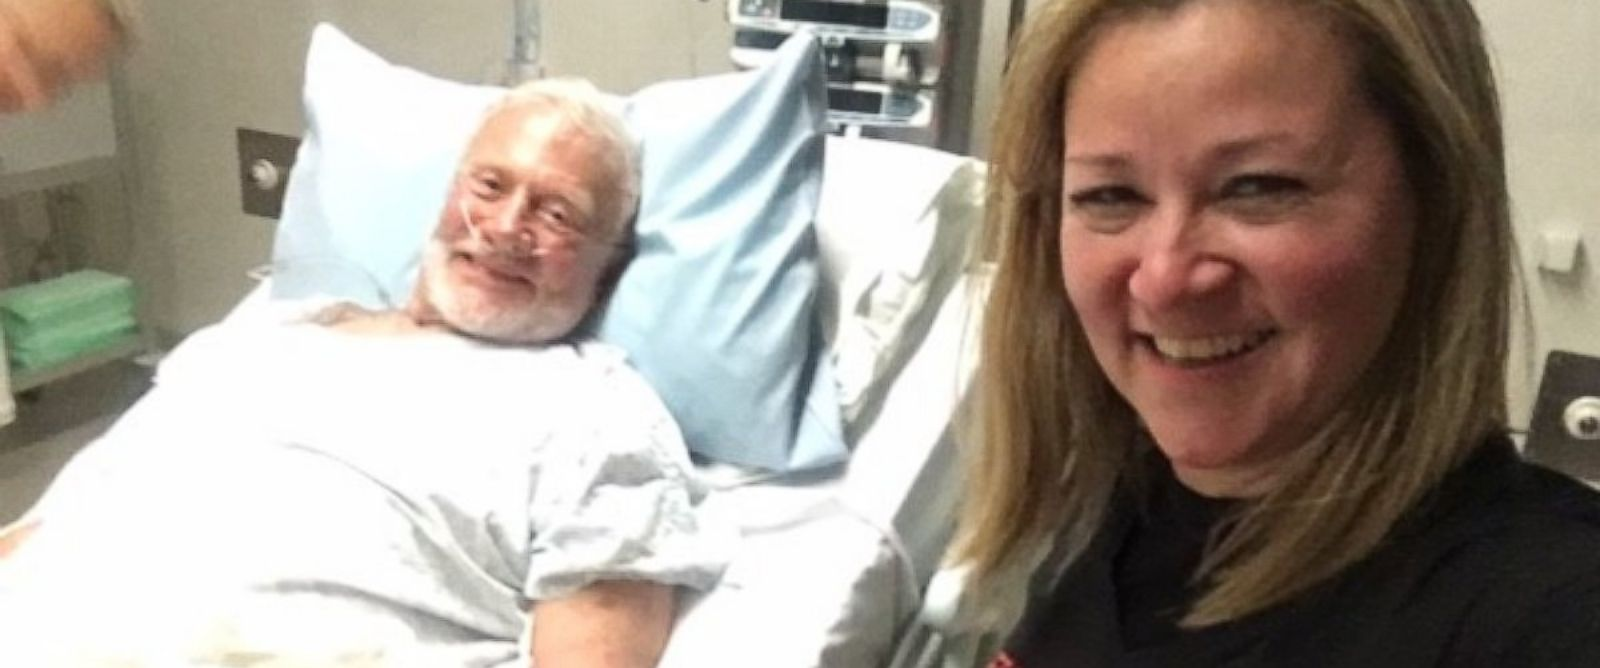 PHOTO: Astronaut Buzz Aldrin is seen smiling from a hospital bed in New Zealand after he was medically evacuated from the South Pole.